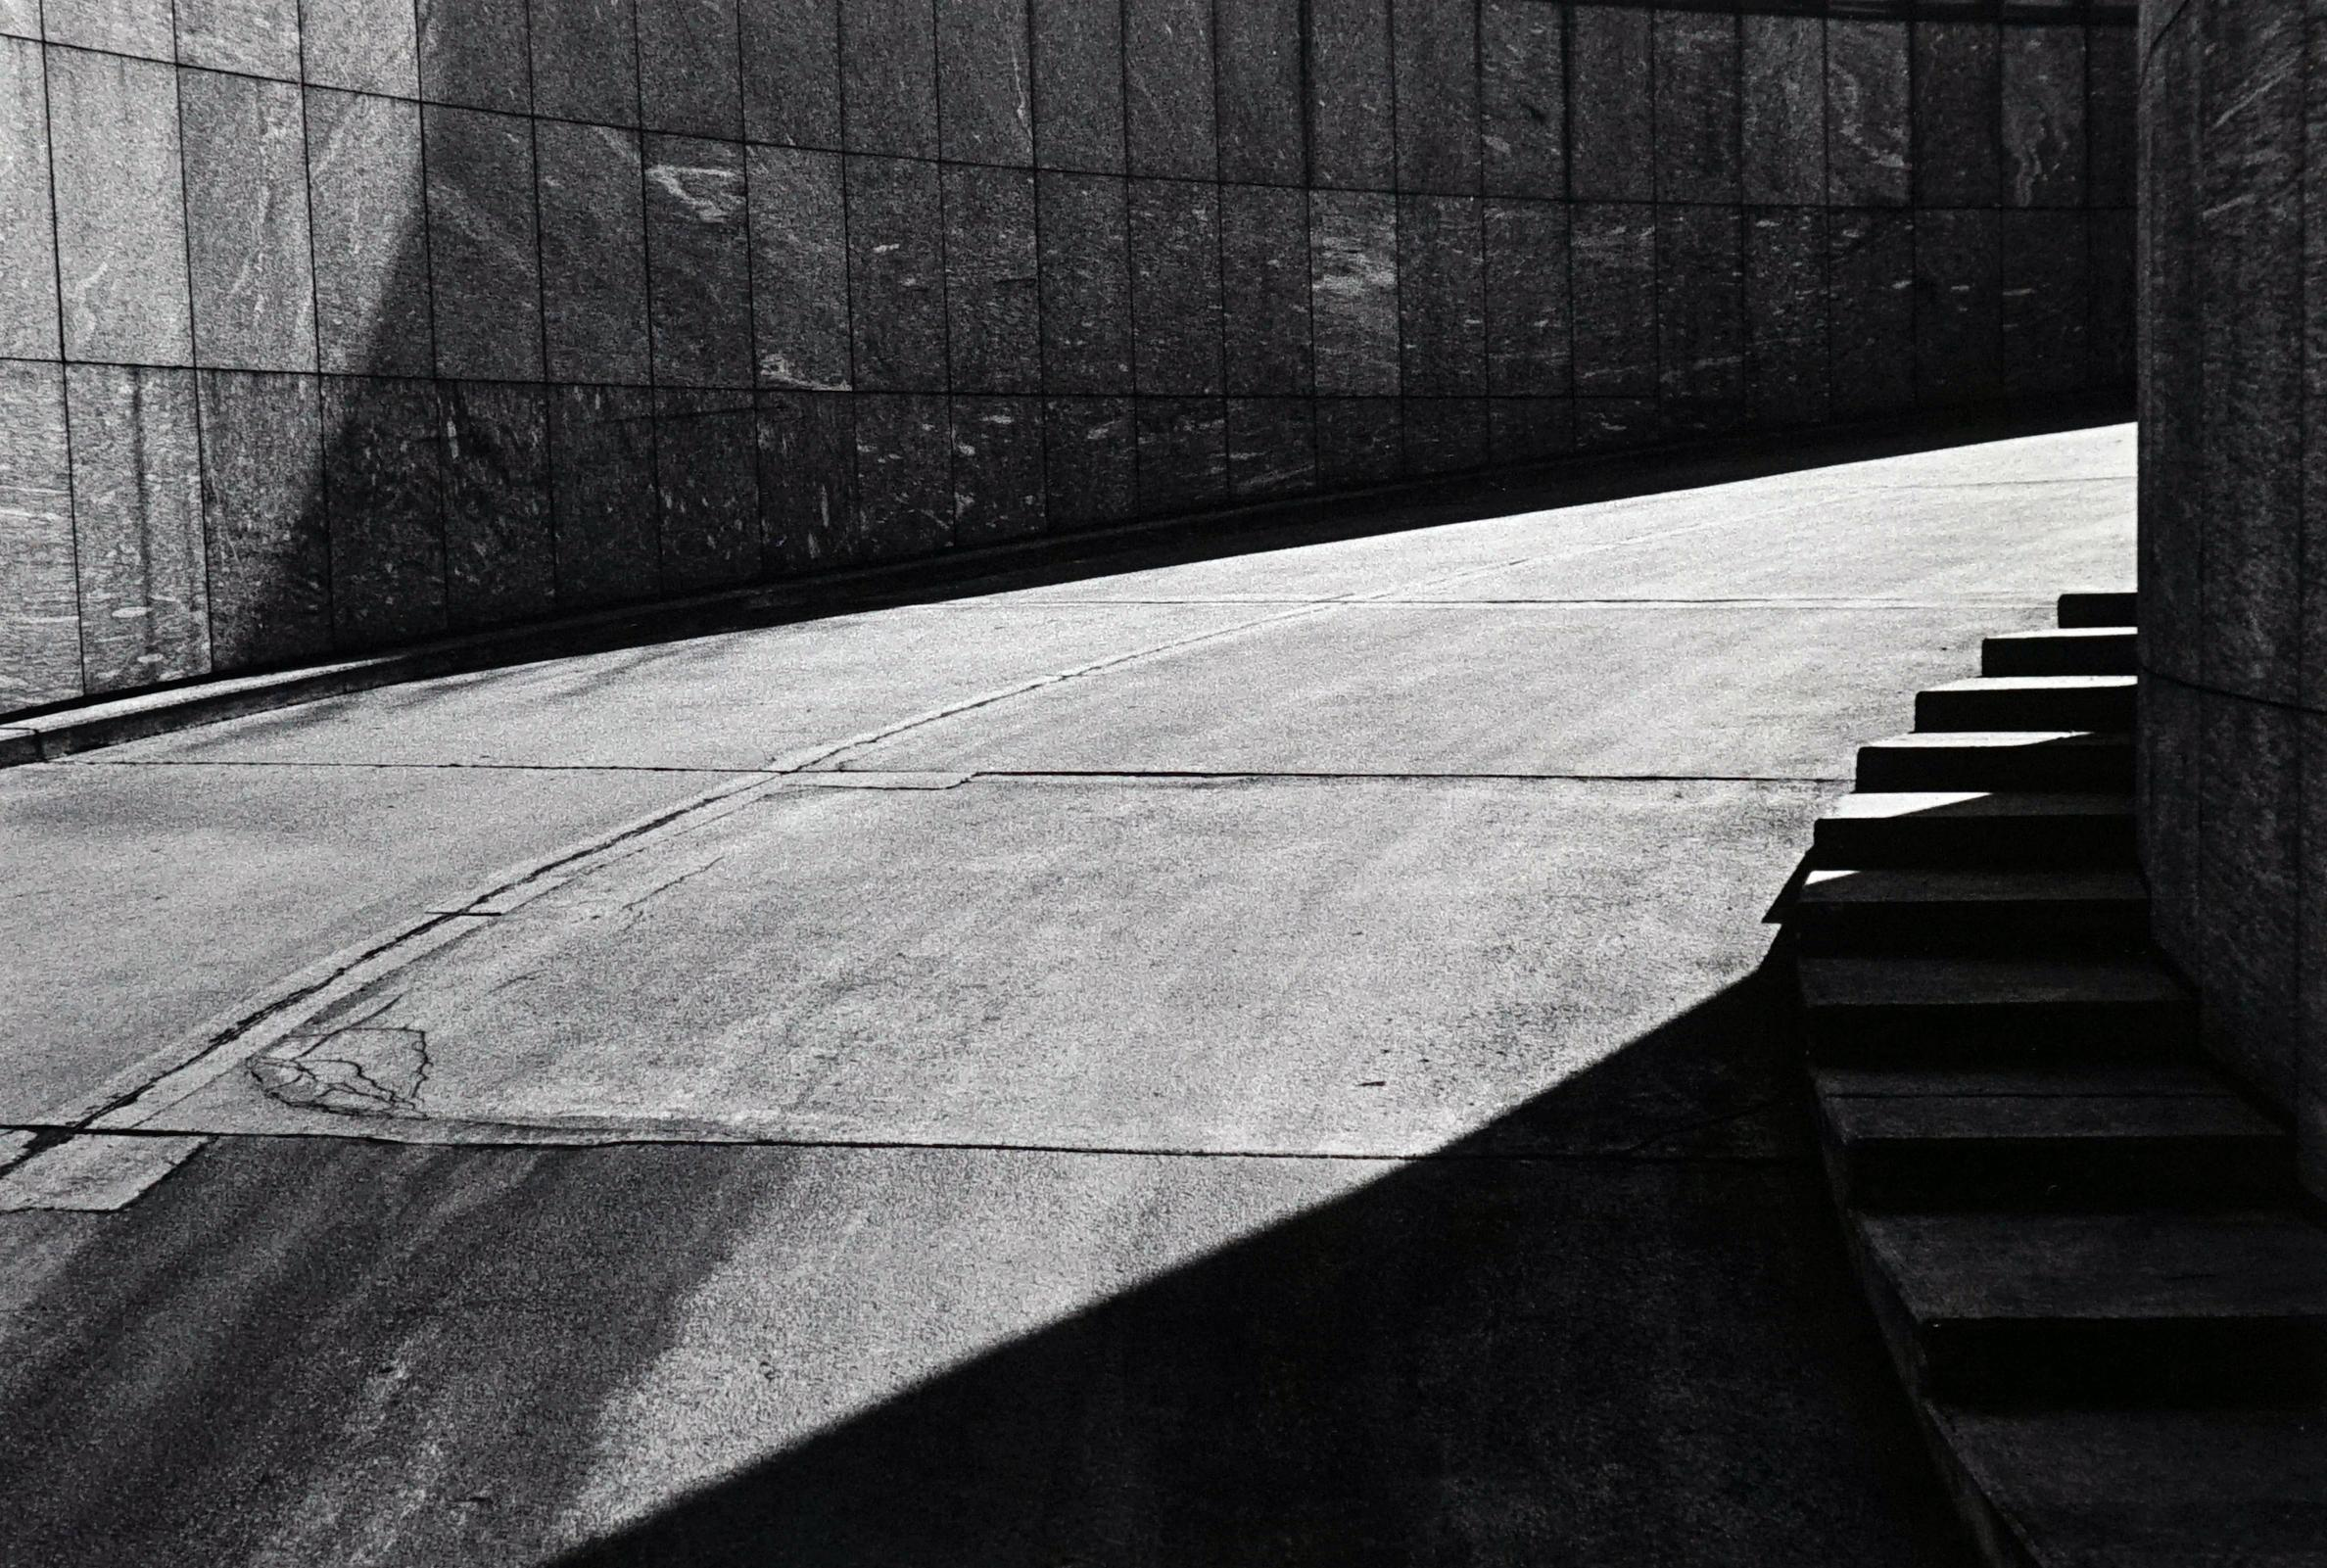 Step by Step - Off-Print # 2 - 1979 - Minimalist Black & White Photography